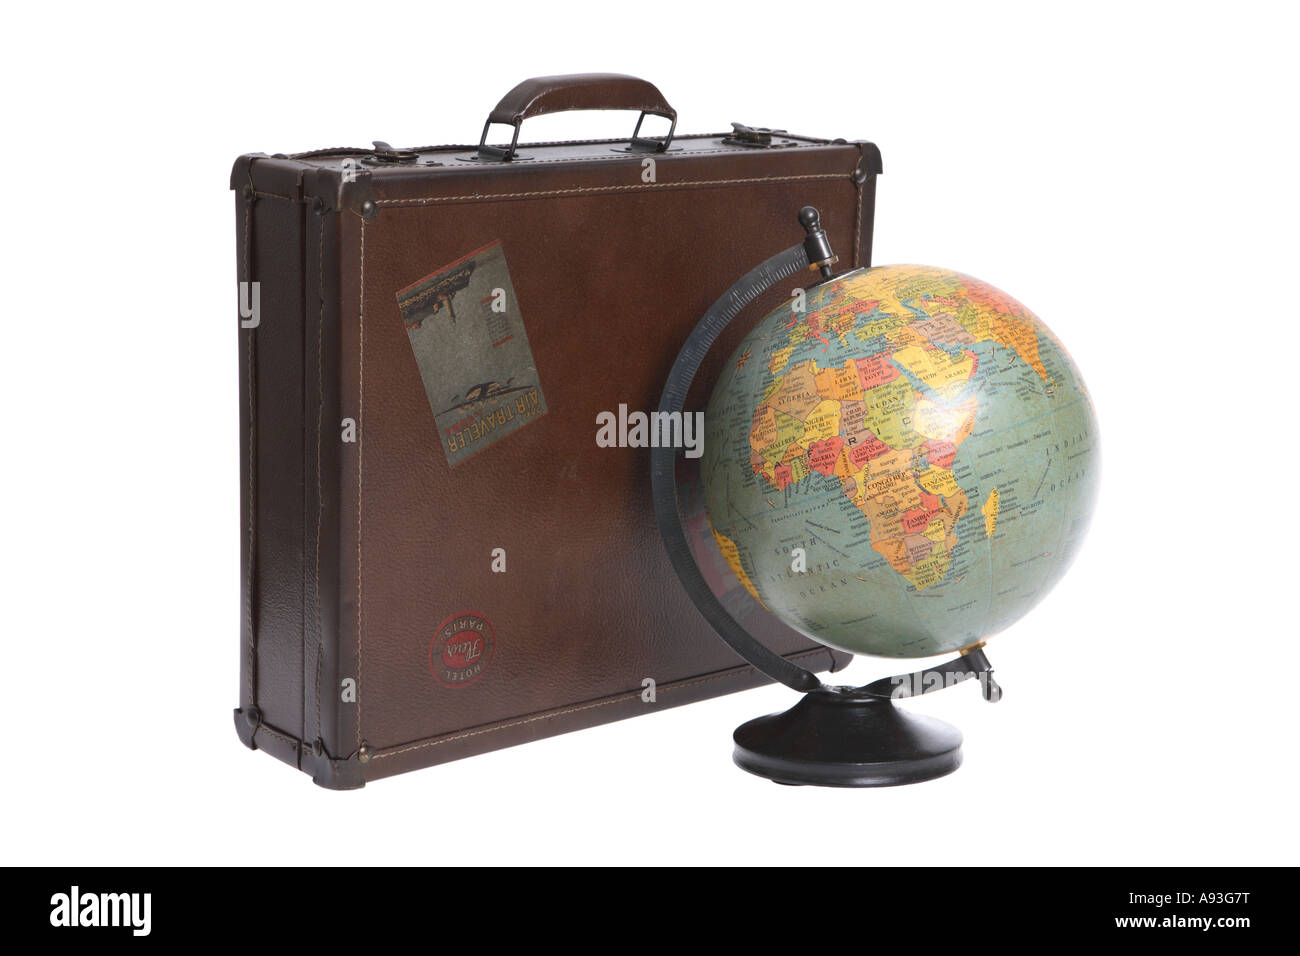 Vintage Globe and suitcase cut out on white background - Stock Image